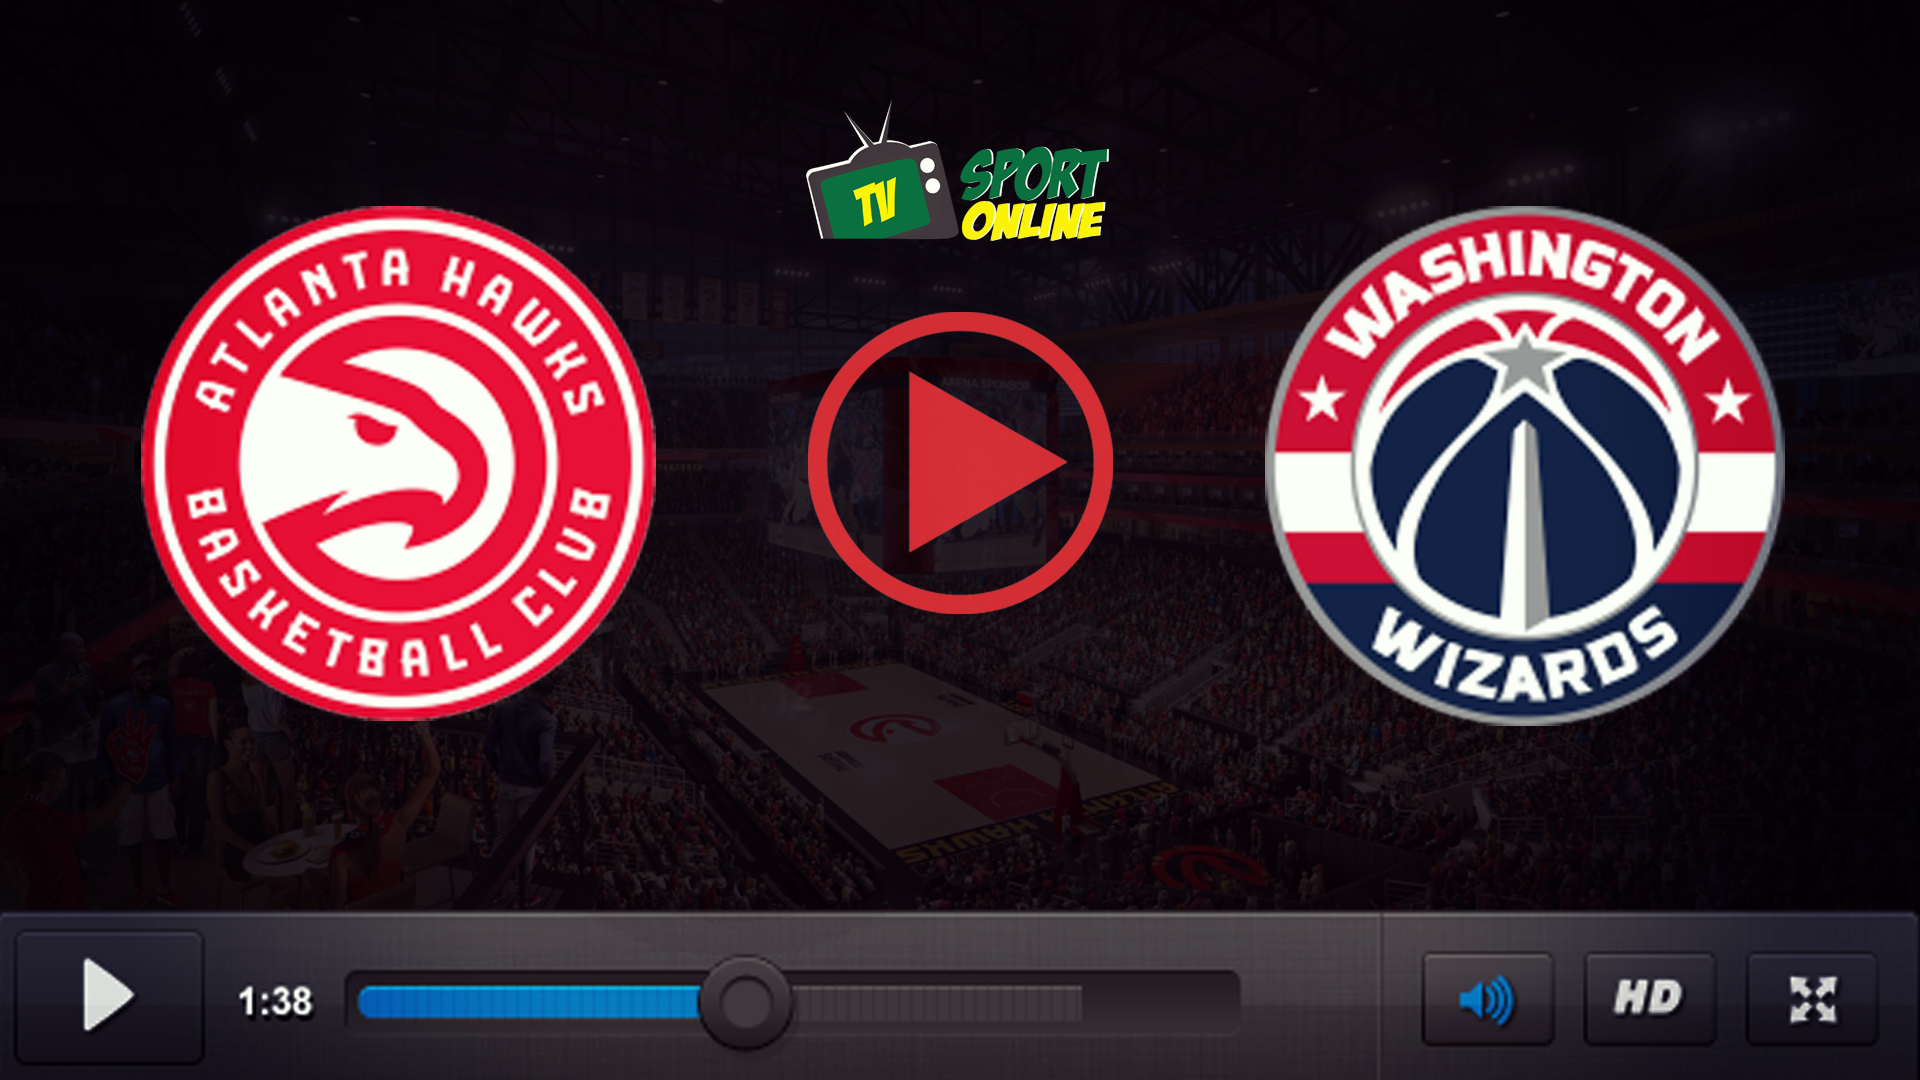 Watch Live Stream Atlanta Hawks – Washington Wizards